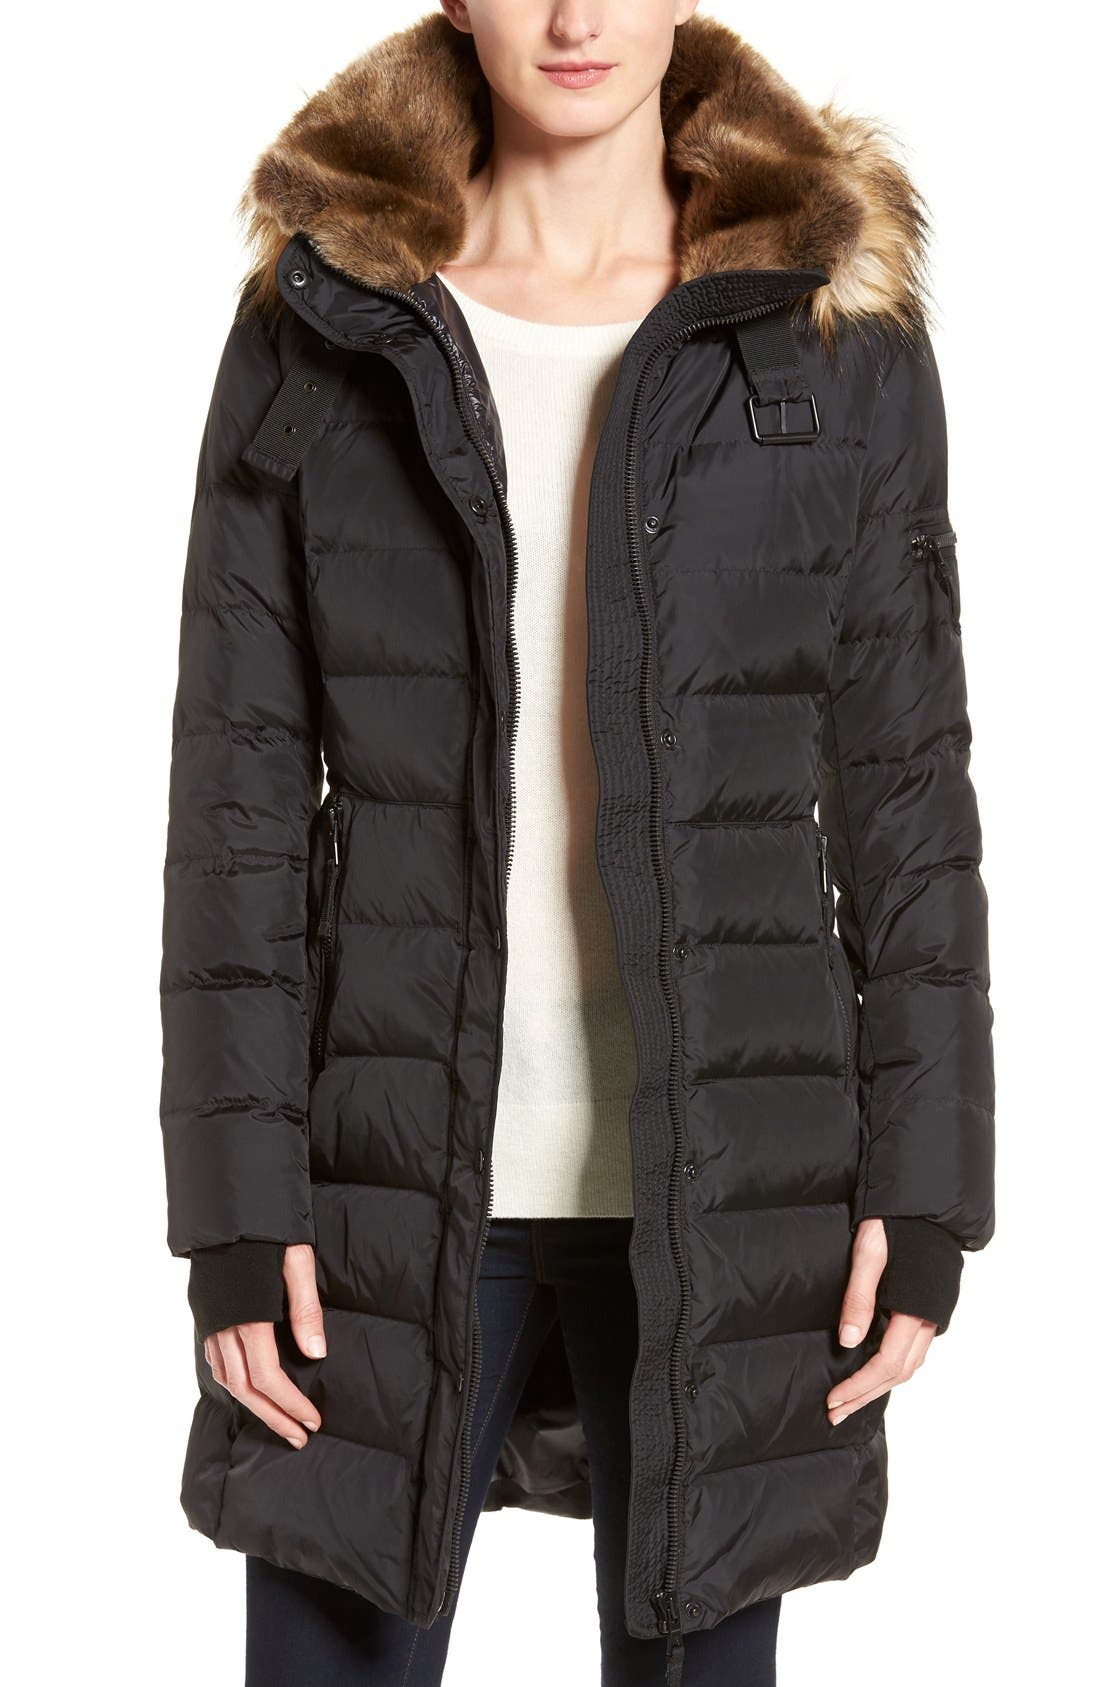 Alternate Image 1 Selected - S13 'Uptown' Quilted Coat with Faux Fur Trim